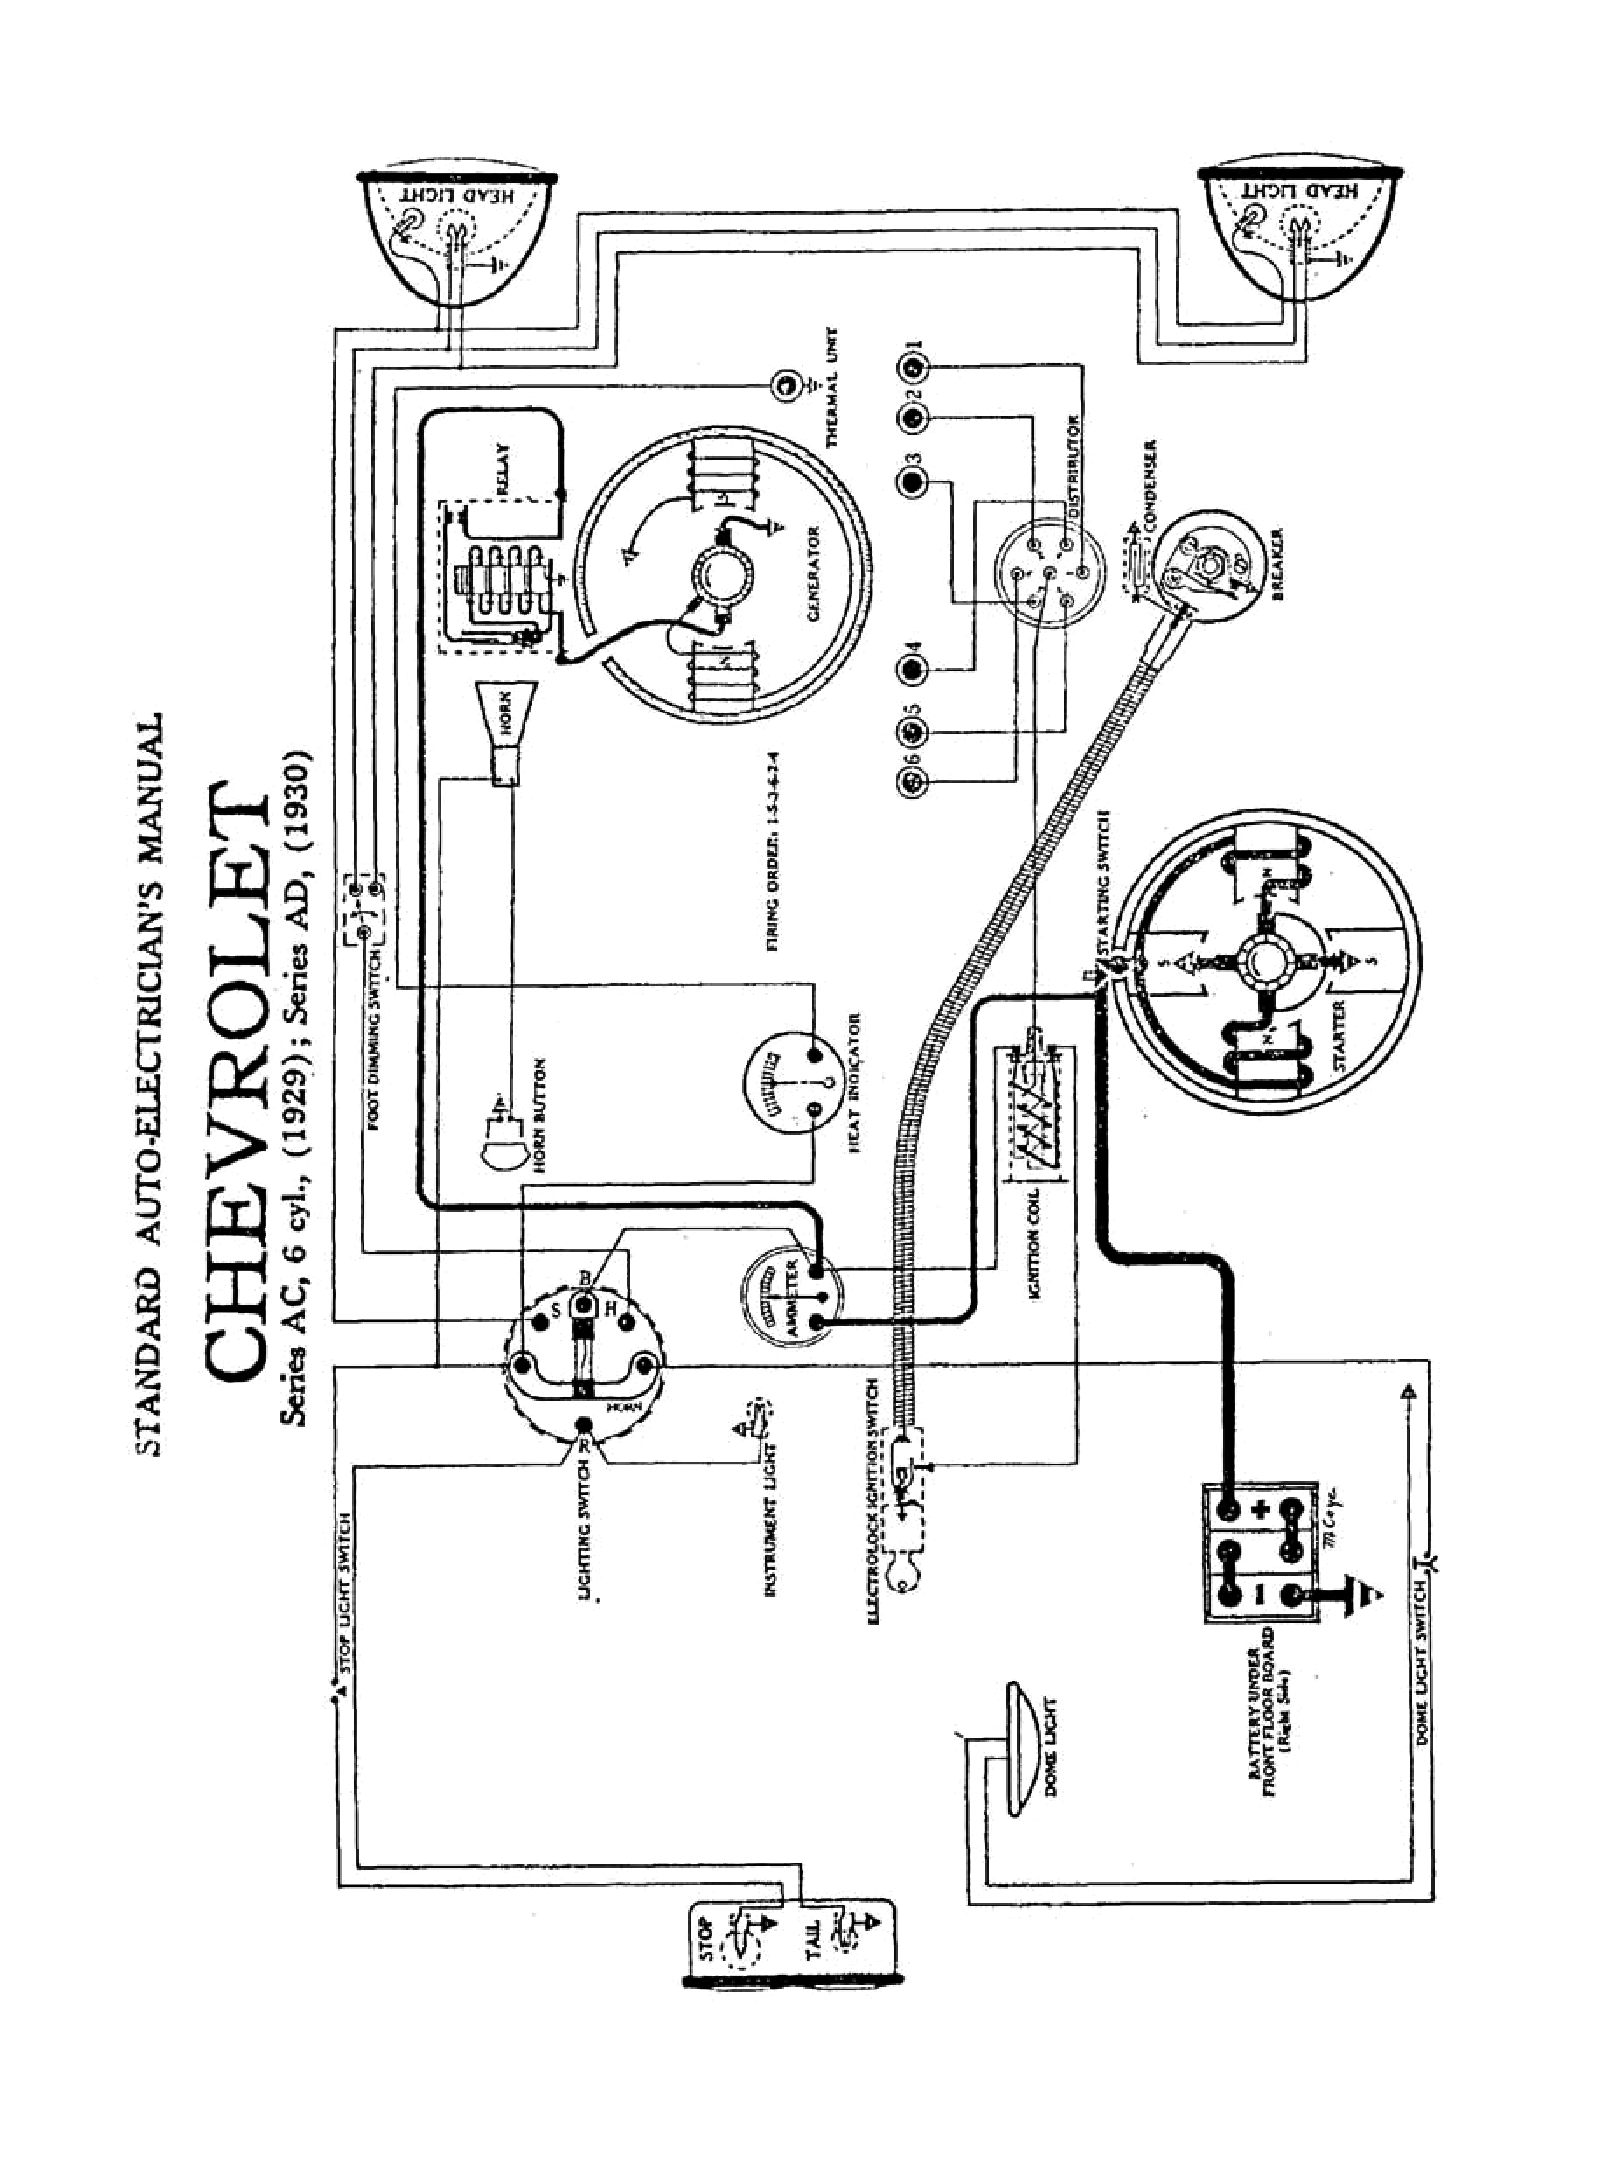 Crank Sensor Location 68932 moreover 97 Ford F150 Starter Location together with Tire Sensor Location furthermore 2003 2011 Lincoln Town Car Clone in addition 1931 Chevrolet Wiring Diagram. on lincoln aviator wiring diagram